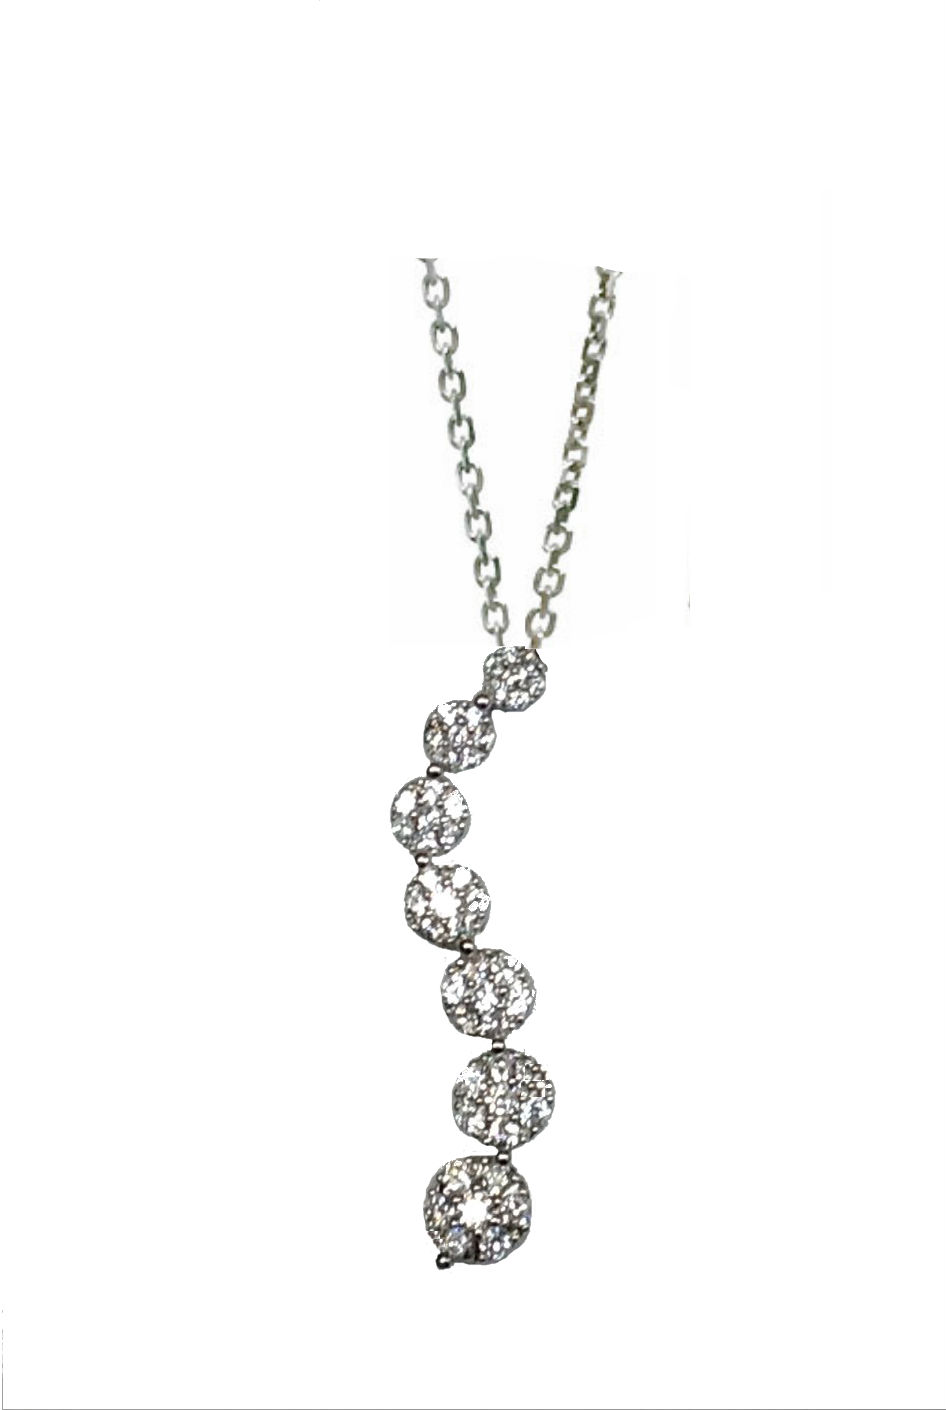 Flower cluster cz journey pendant necklace in sterling silver cluster cz journey pendant necklace in sterling silver adjustable 16 18 aloadofball Images